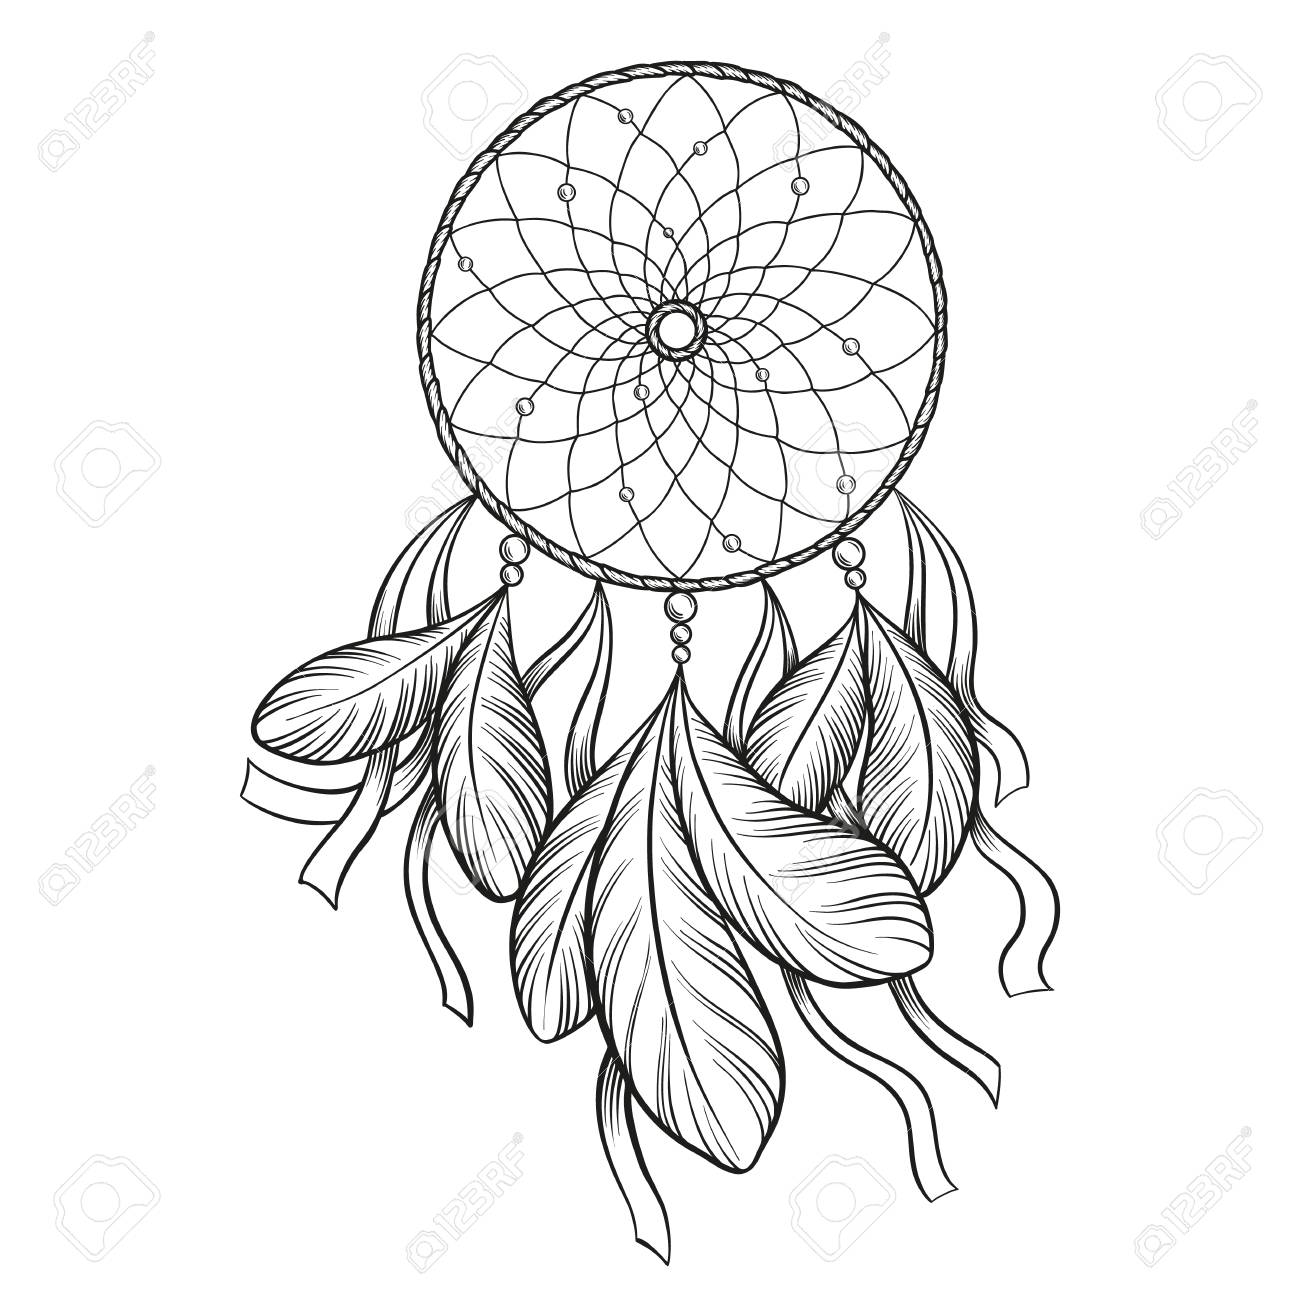 Outline Of Dream Wiring Diagrams Example State Machine The Is Clocked By A Signal 39clk Hand Drawn Vector Black Catcher Isolated On White Rh 123rf Com Dreamcatcher